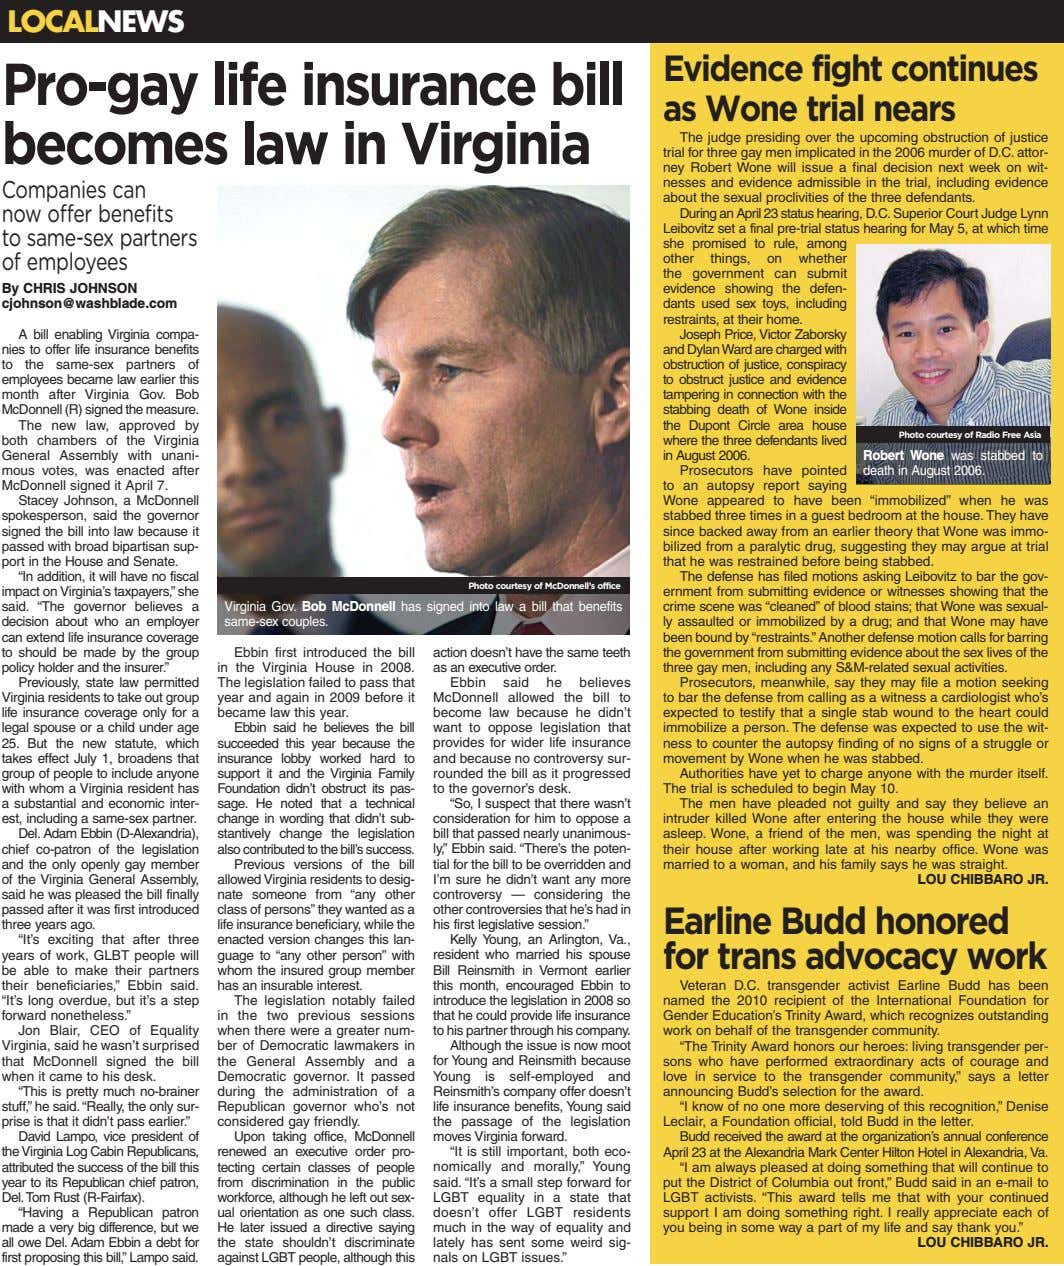 LOCALNEWS Pro-gay life insurance bill becomes law in Virginia Evidence fight continues as Wone trial